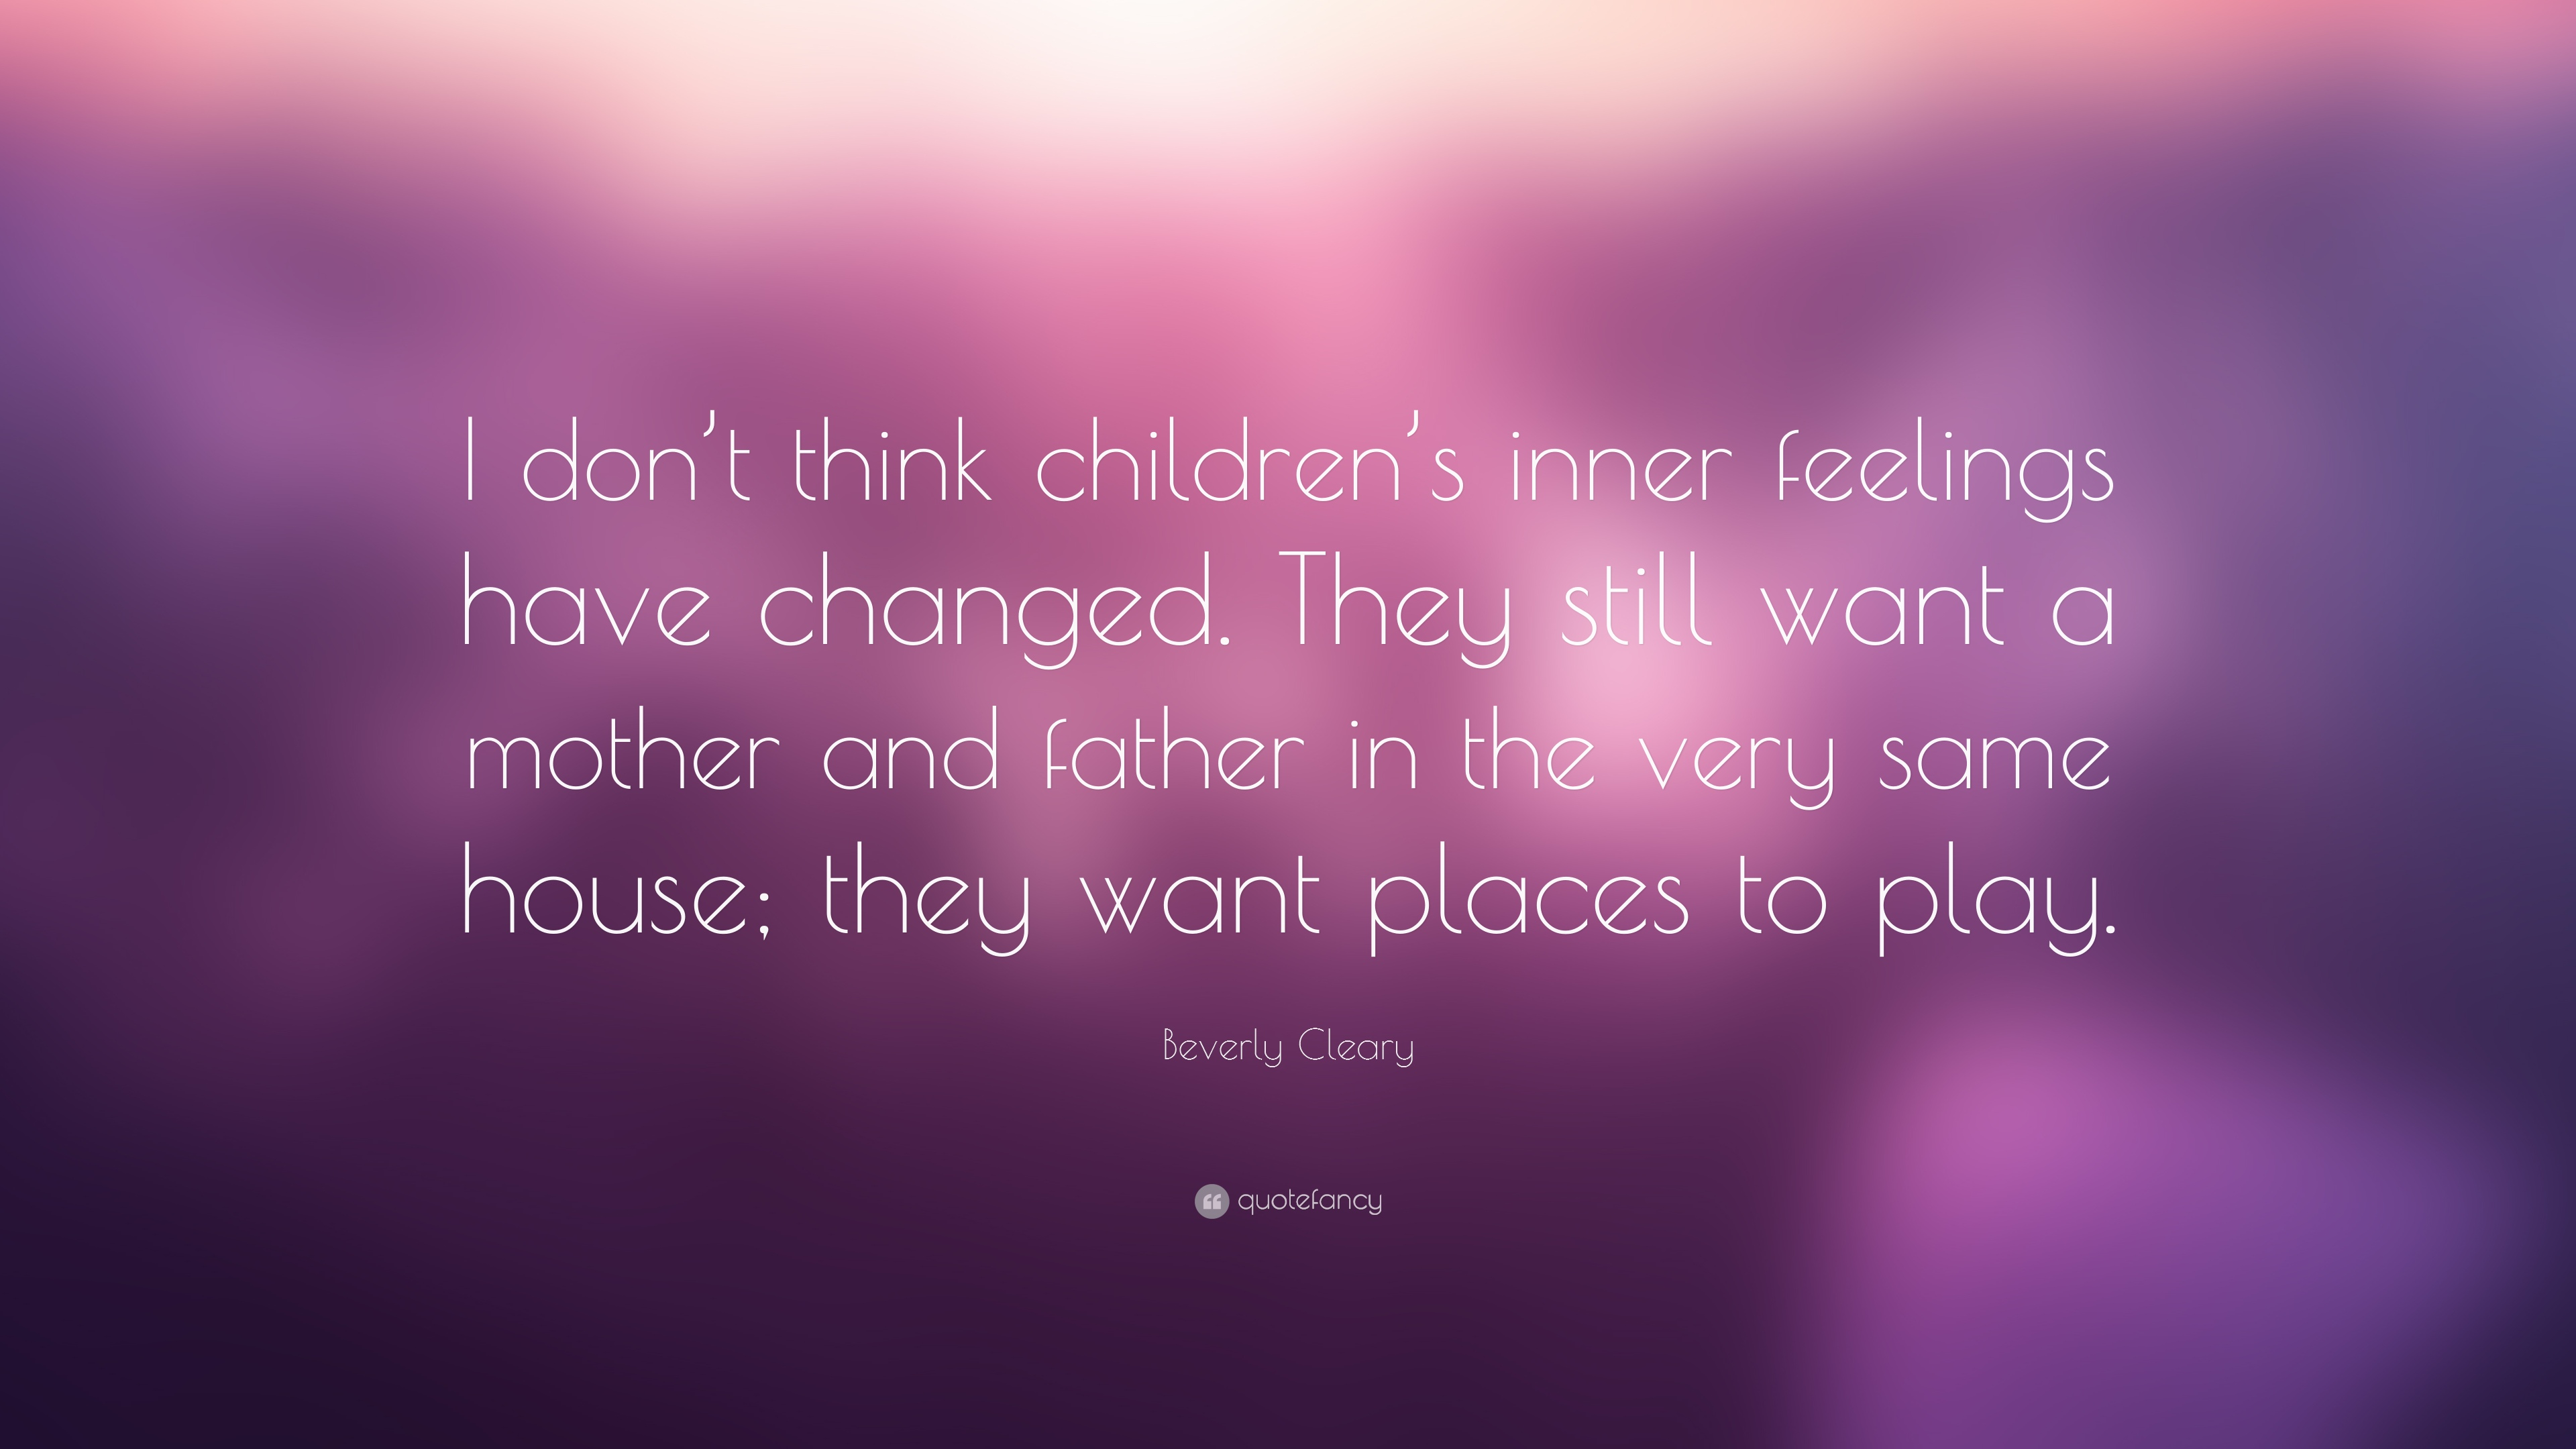 """Beverly Cleary Quote: """"I don't think children's inner feelings have changed. They still want a mother and father in the very same house ..."""